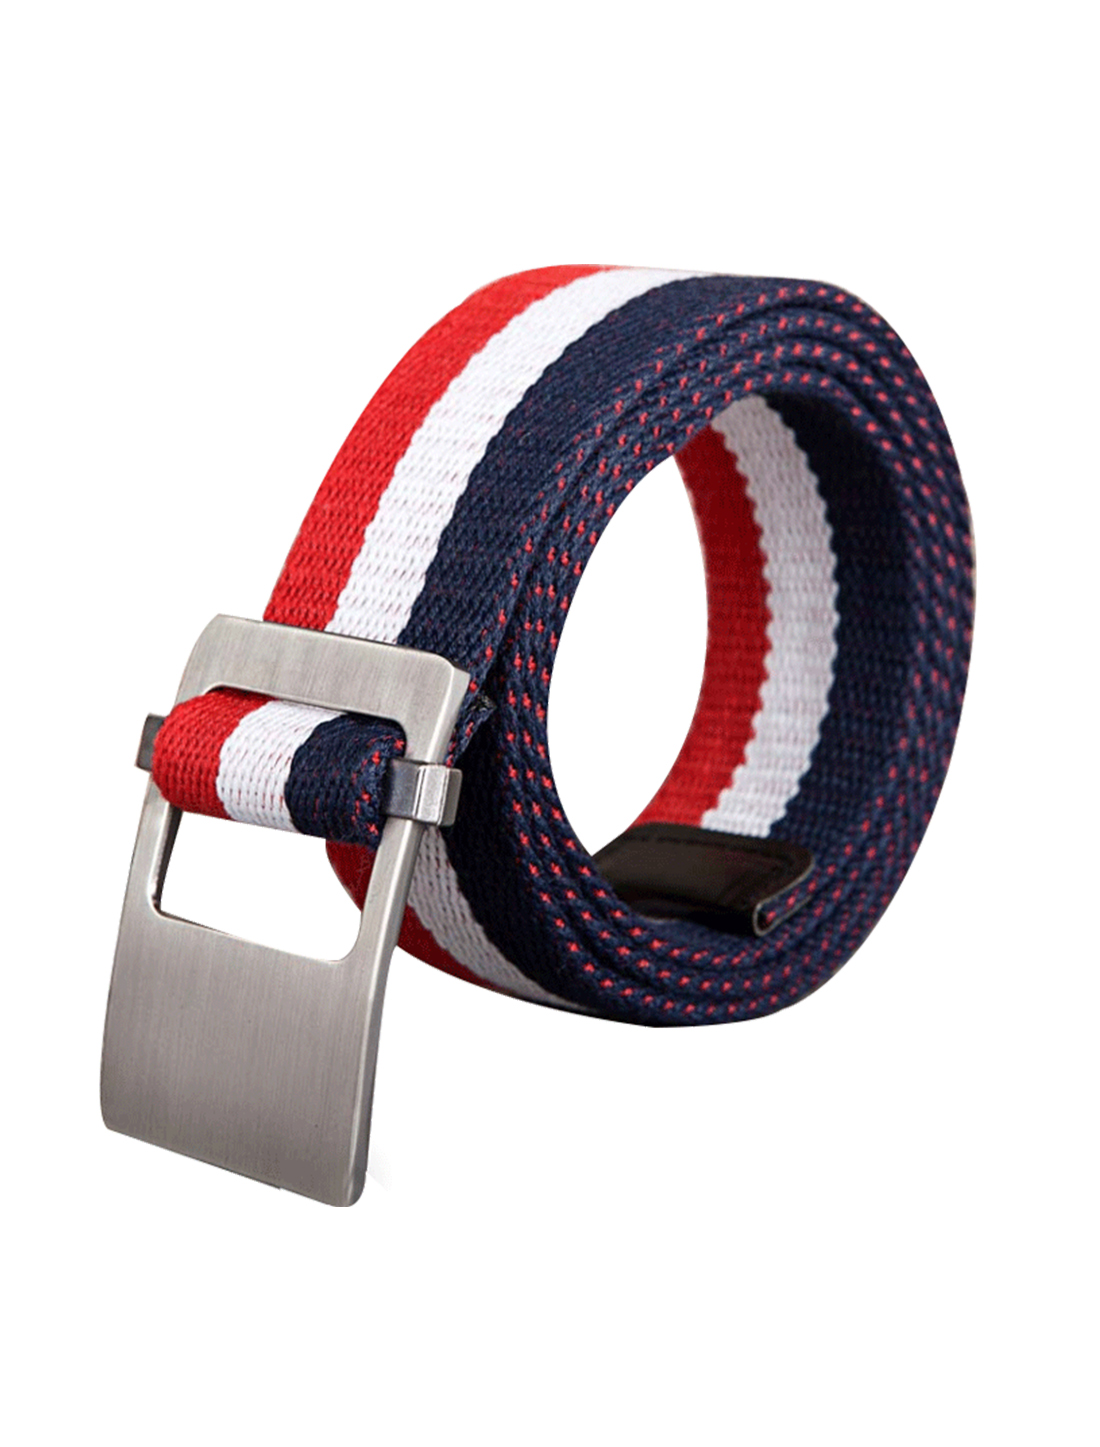 Unisex Canvas Adjustable Holeless Flat Metal Buckle Stripe Belt Navy Blue Red